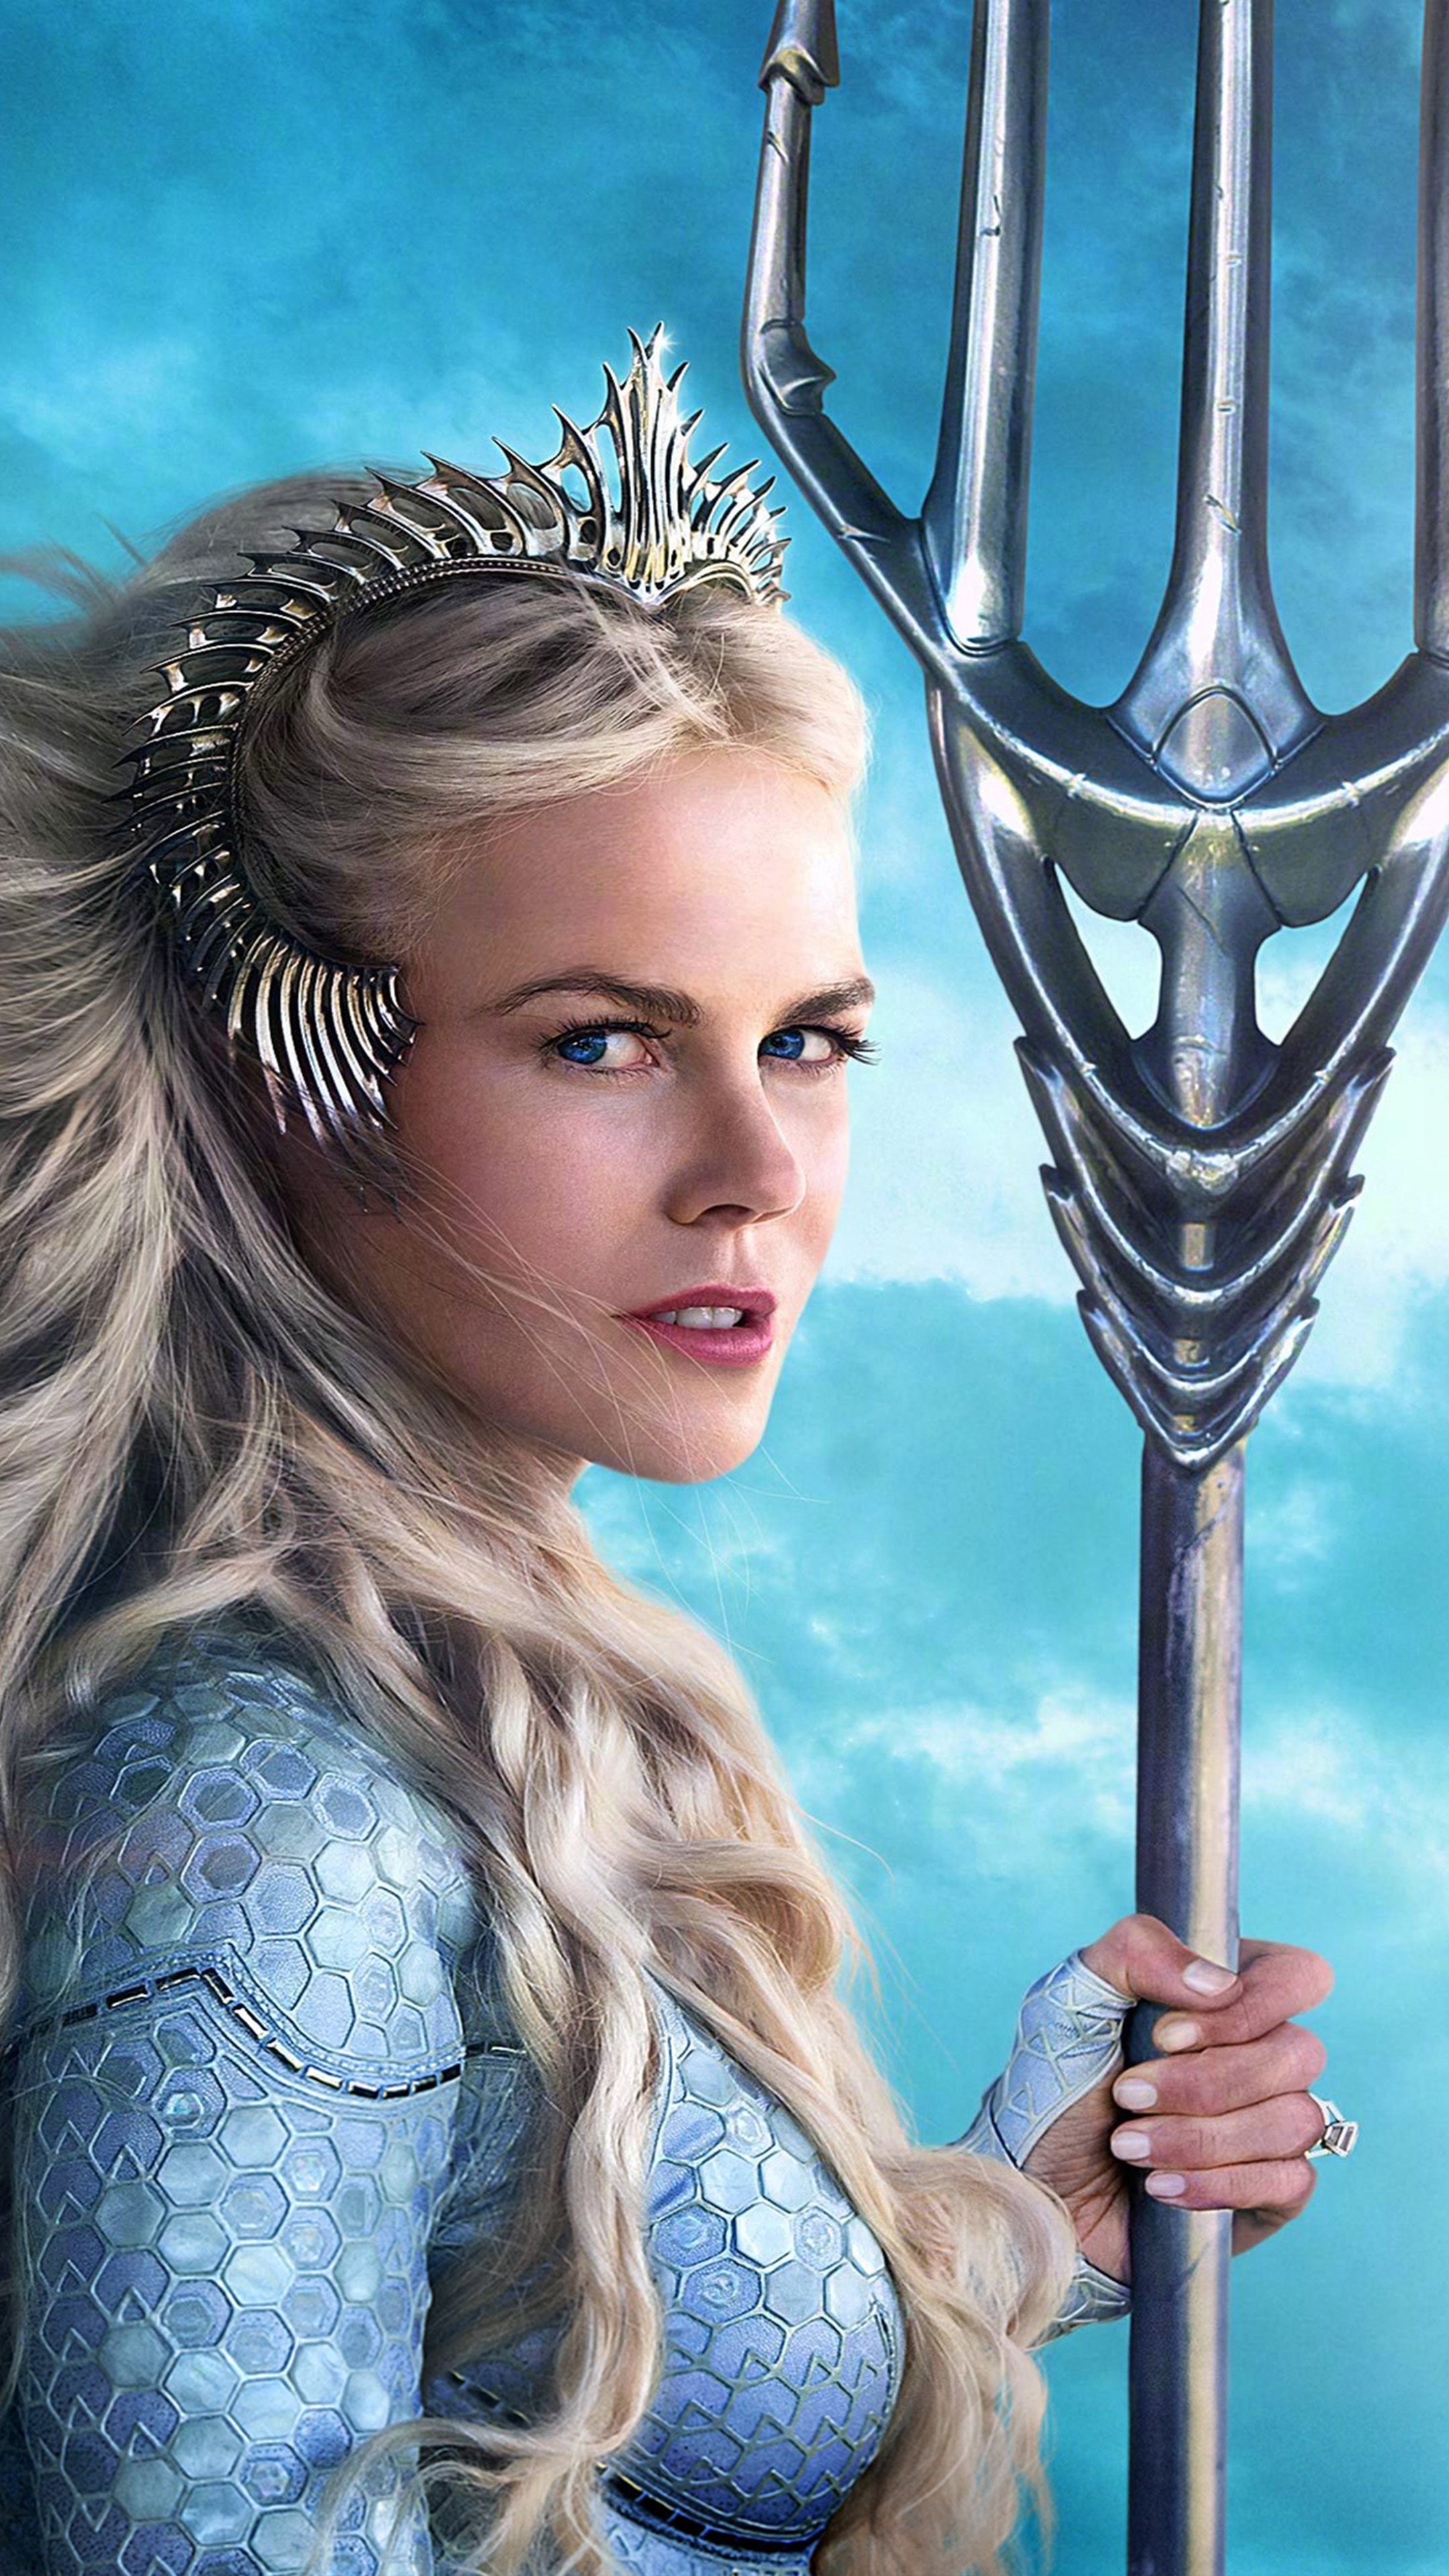 Download Nicole Kidman As Queen Atlanna In Aquaman 2018 Free Pure 4k